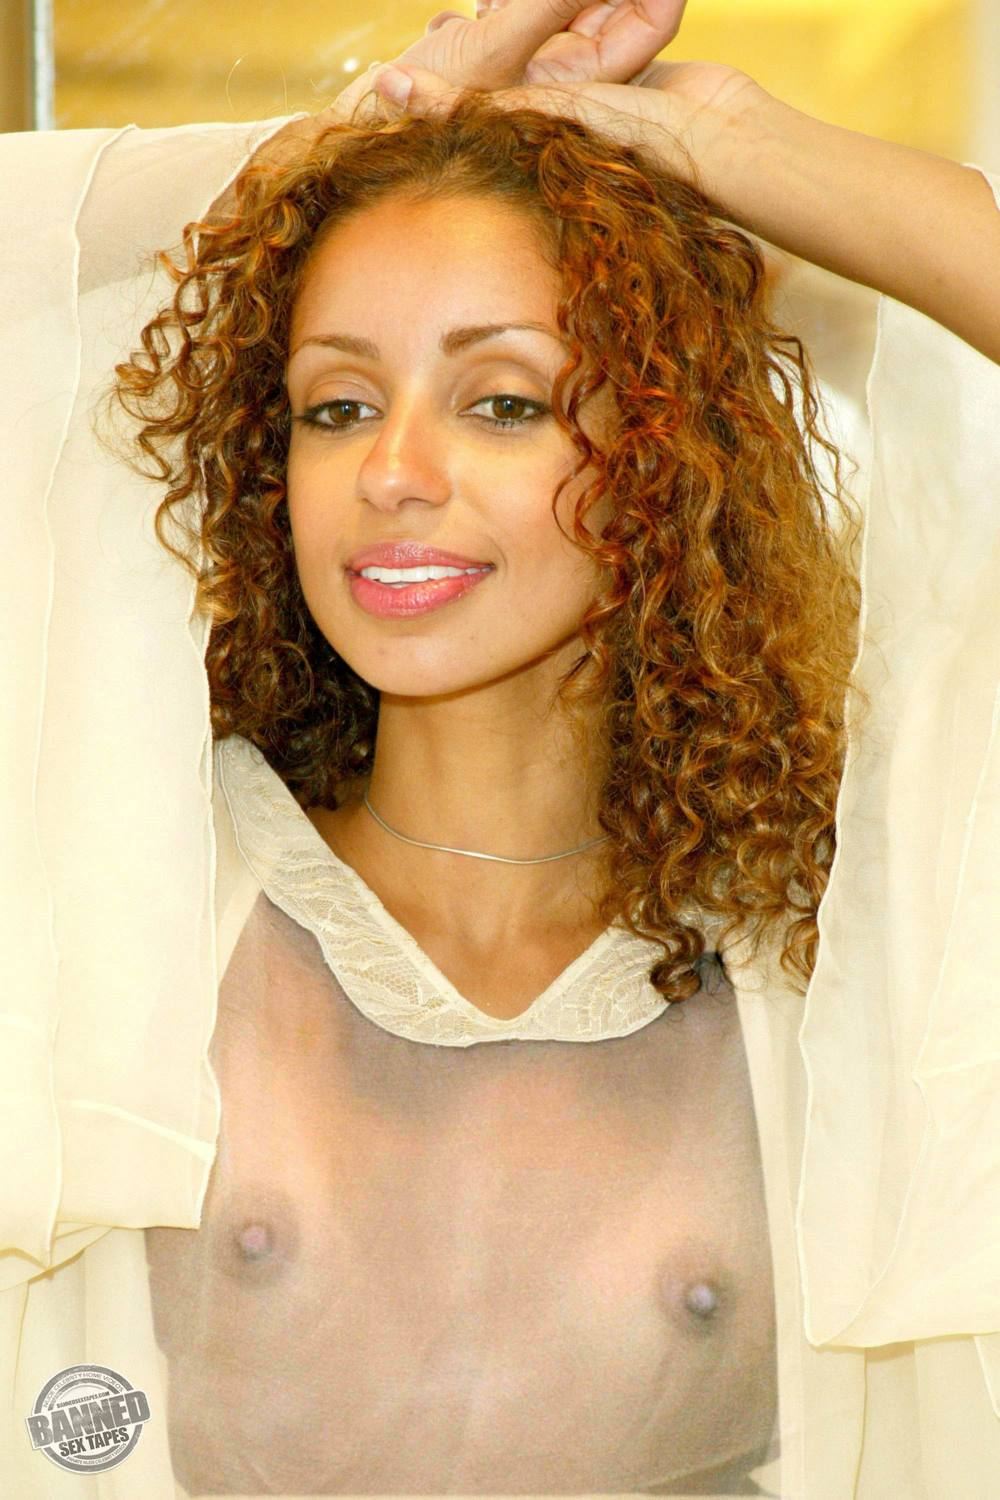 Agree, Nude pictures of mya harrison are